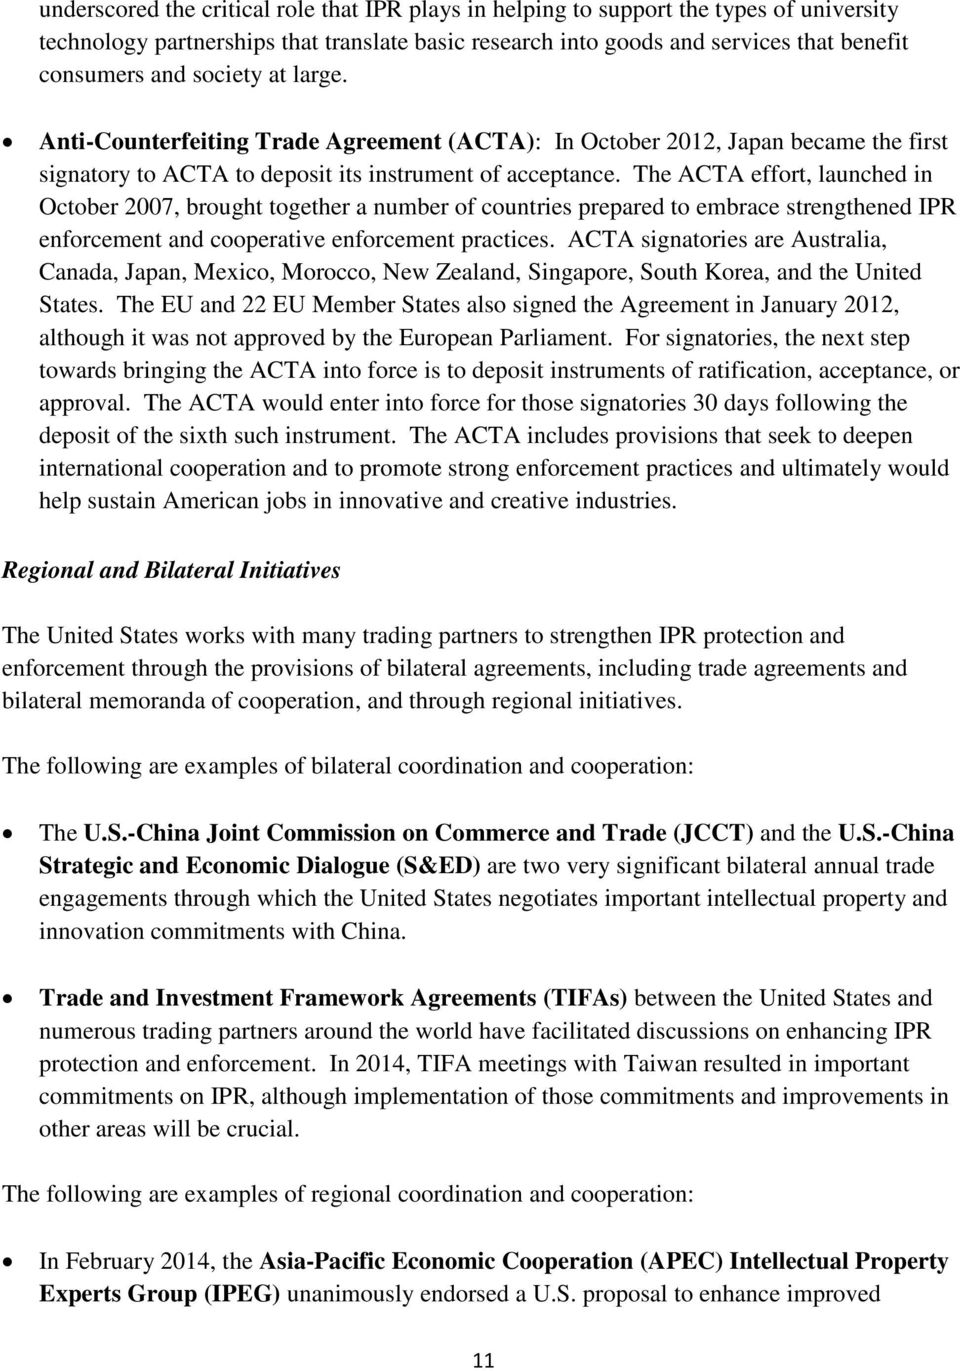 The ACTA effort, launched in October 2007, brought together a number of countries prepared to embrace strengthened IPR enforcement and cooperative enforcement practices.